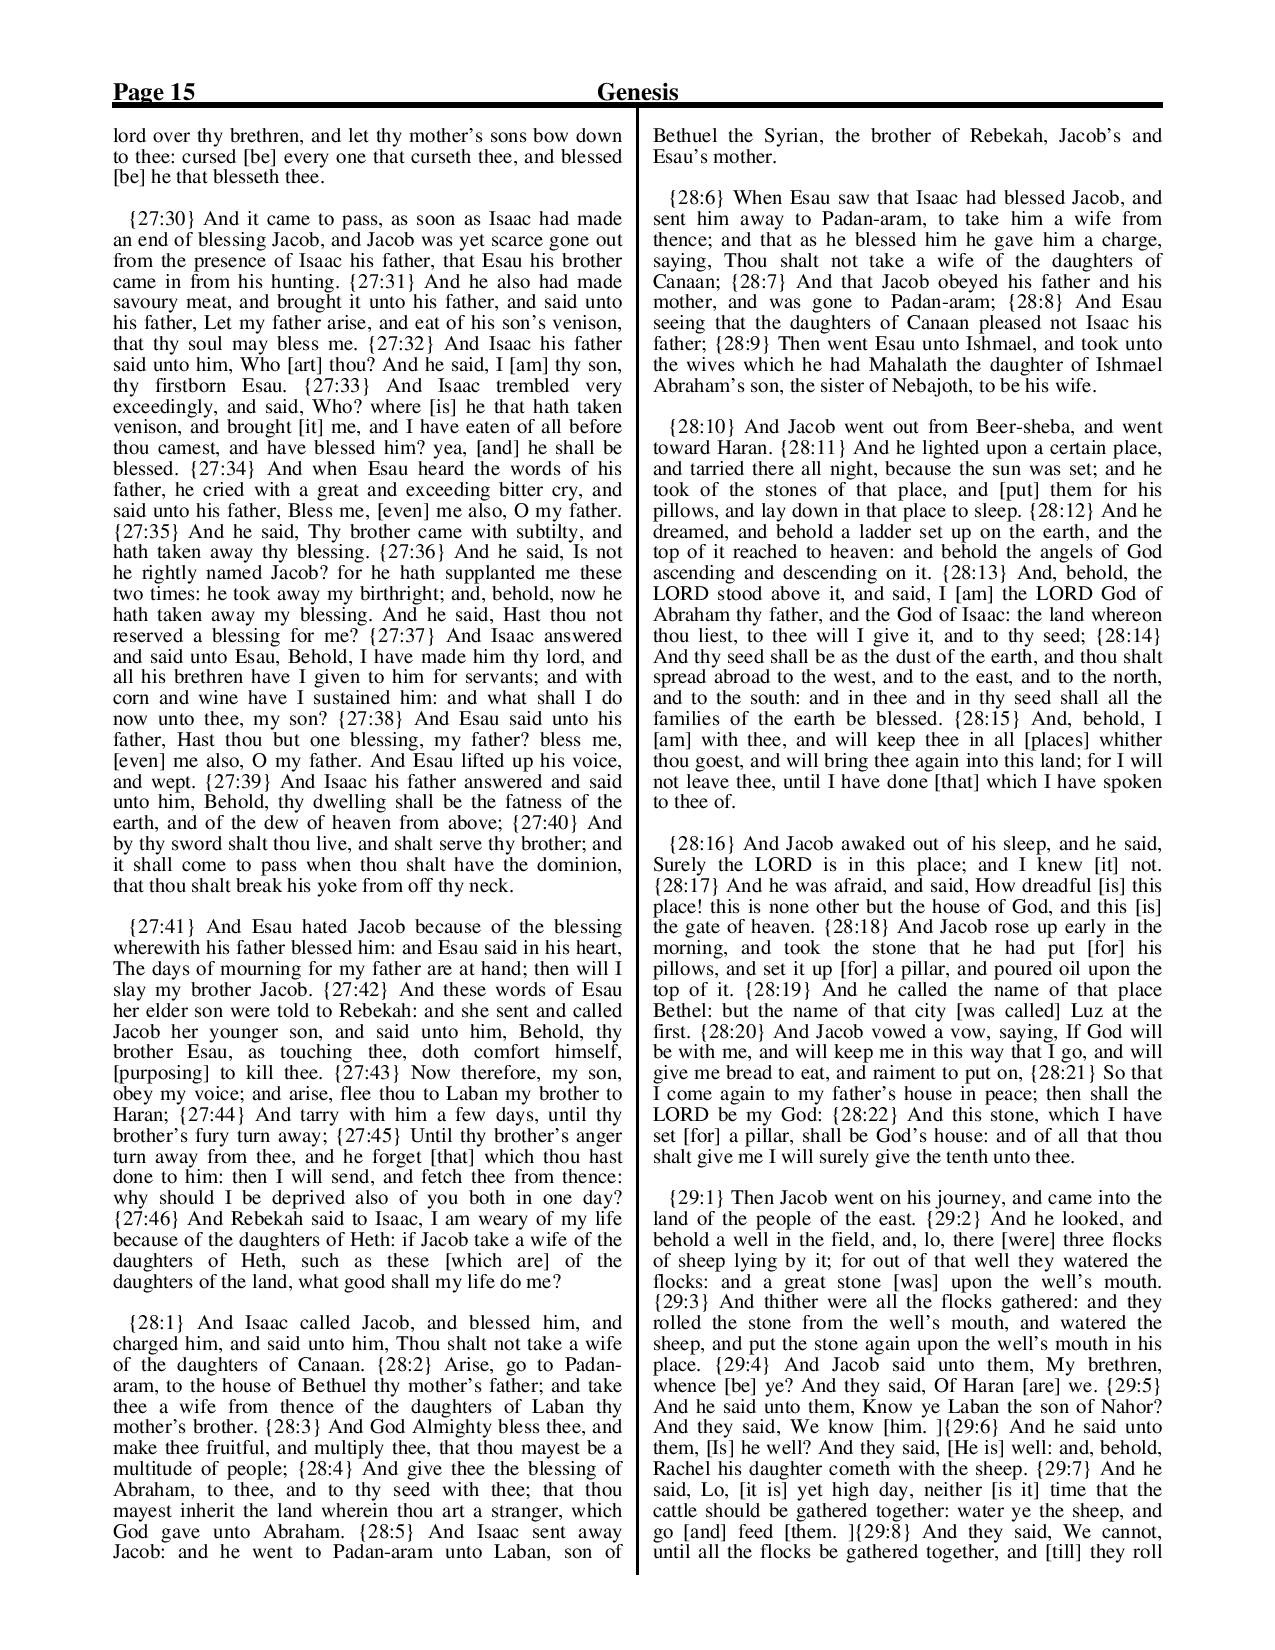 King-James-Bible-KJV-Bible-PDF-page-036